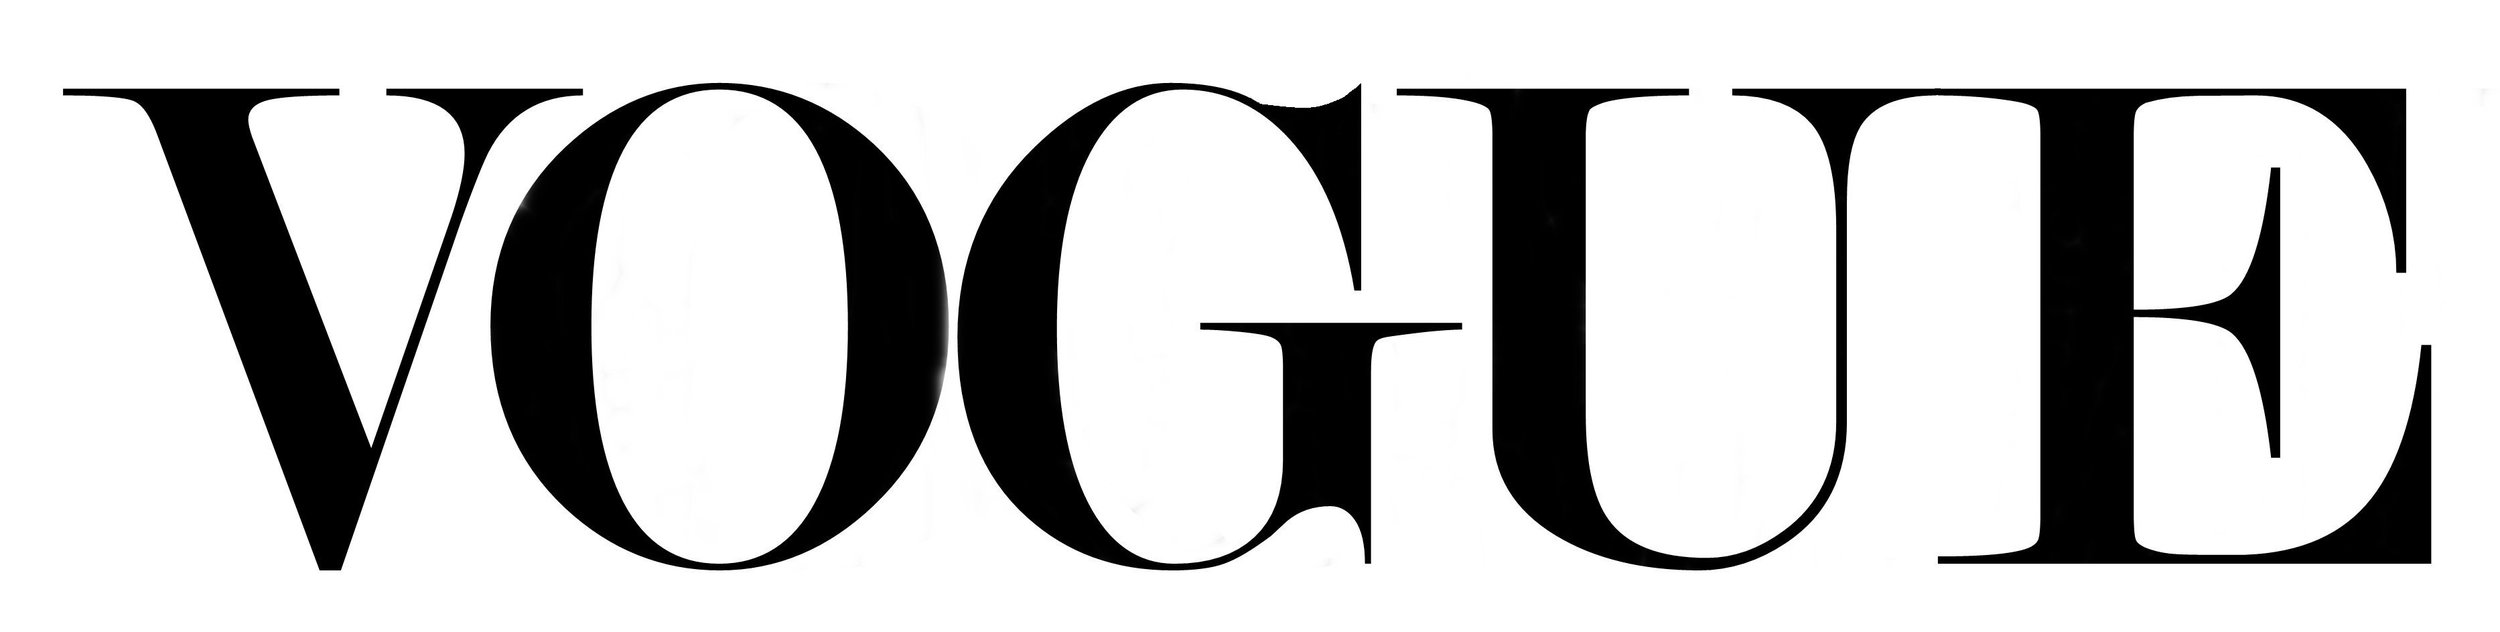 https://www.vogue.com/article/house-votes-on-20-week-abortion-ban